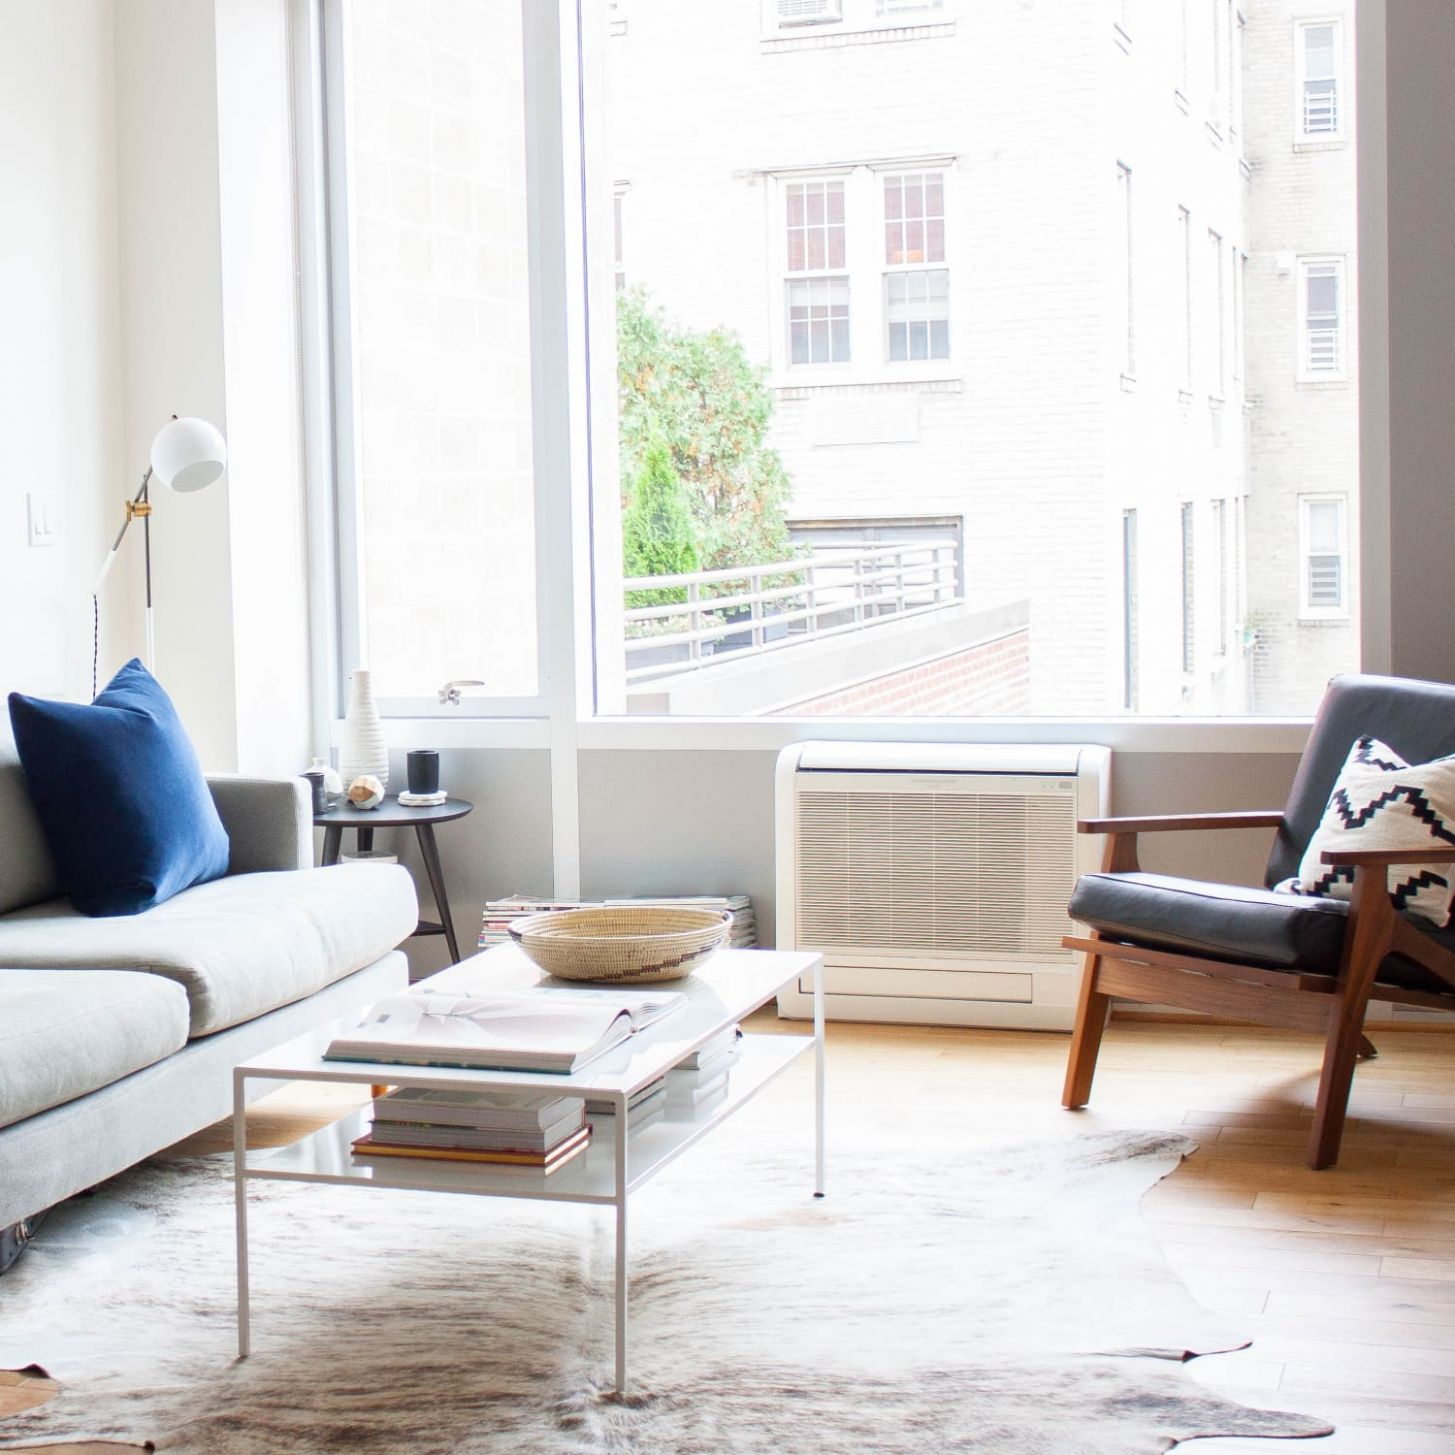 11 Small Living Room Decorating & Design Ideas - How to Decorate a ...